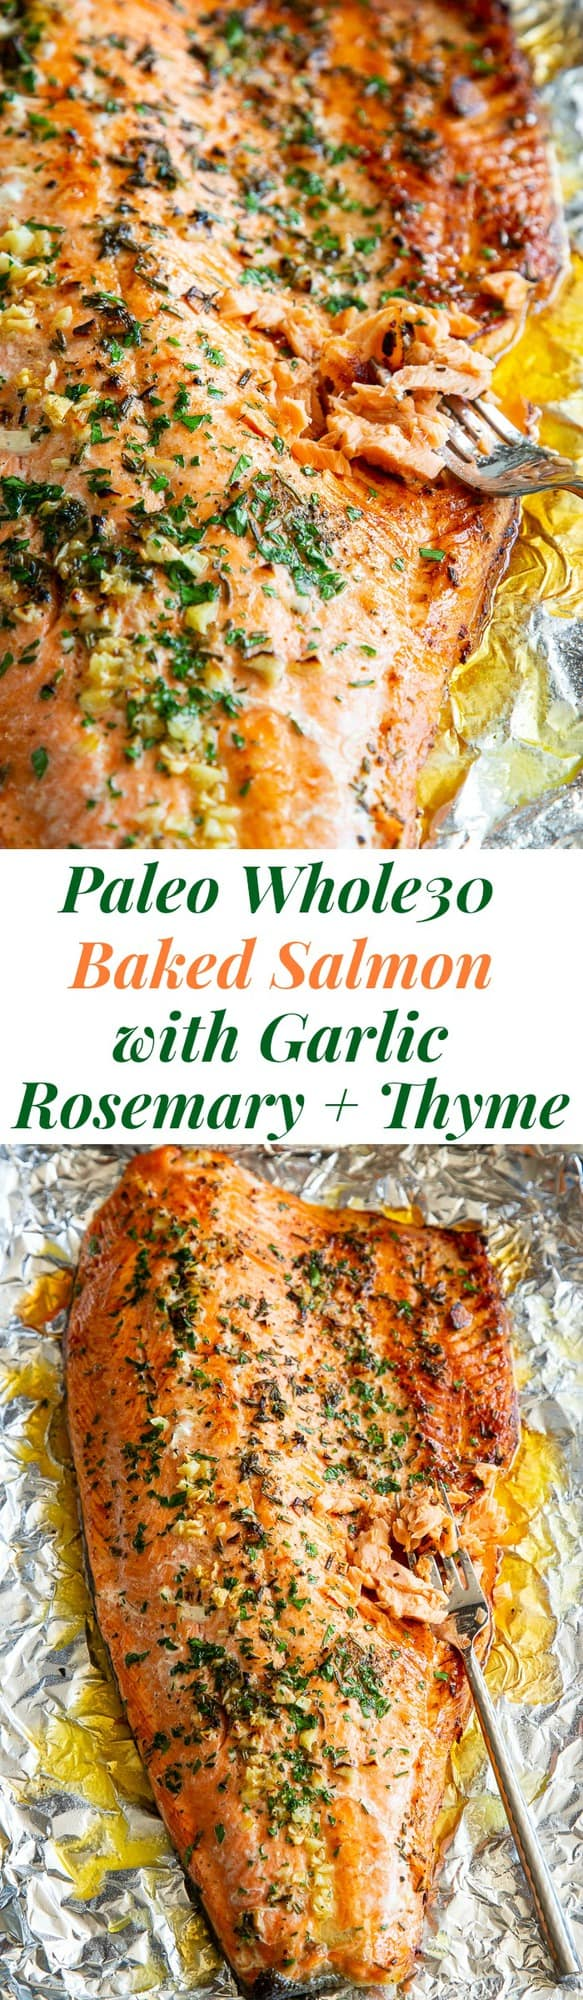 #ad This Paleo, Keto + Whole30 Baked Salmon in Foil with Garlic, Rosemary and Thyme is packed with flavor and super easy to make. A mix of melted ghee, garlic and fresh herbs (plus a little lemon) give this #primewaters salmon fillet tons of flavor and a high oven temperature gets the skin a little crispy! It's perfect with all your favorite holiday side dishes (espeically my cauliflower stuffing!) and salads, plus fast and easy to throw together. #salmonrecipes